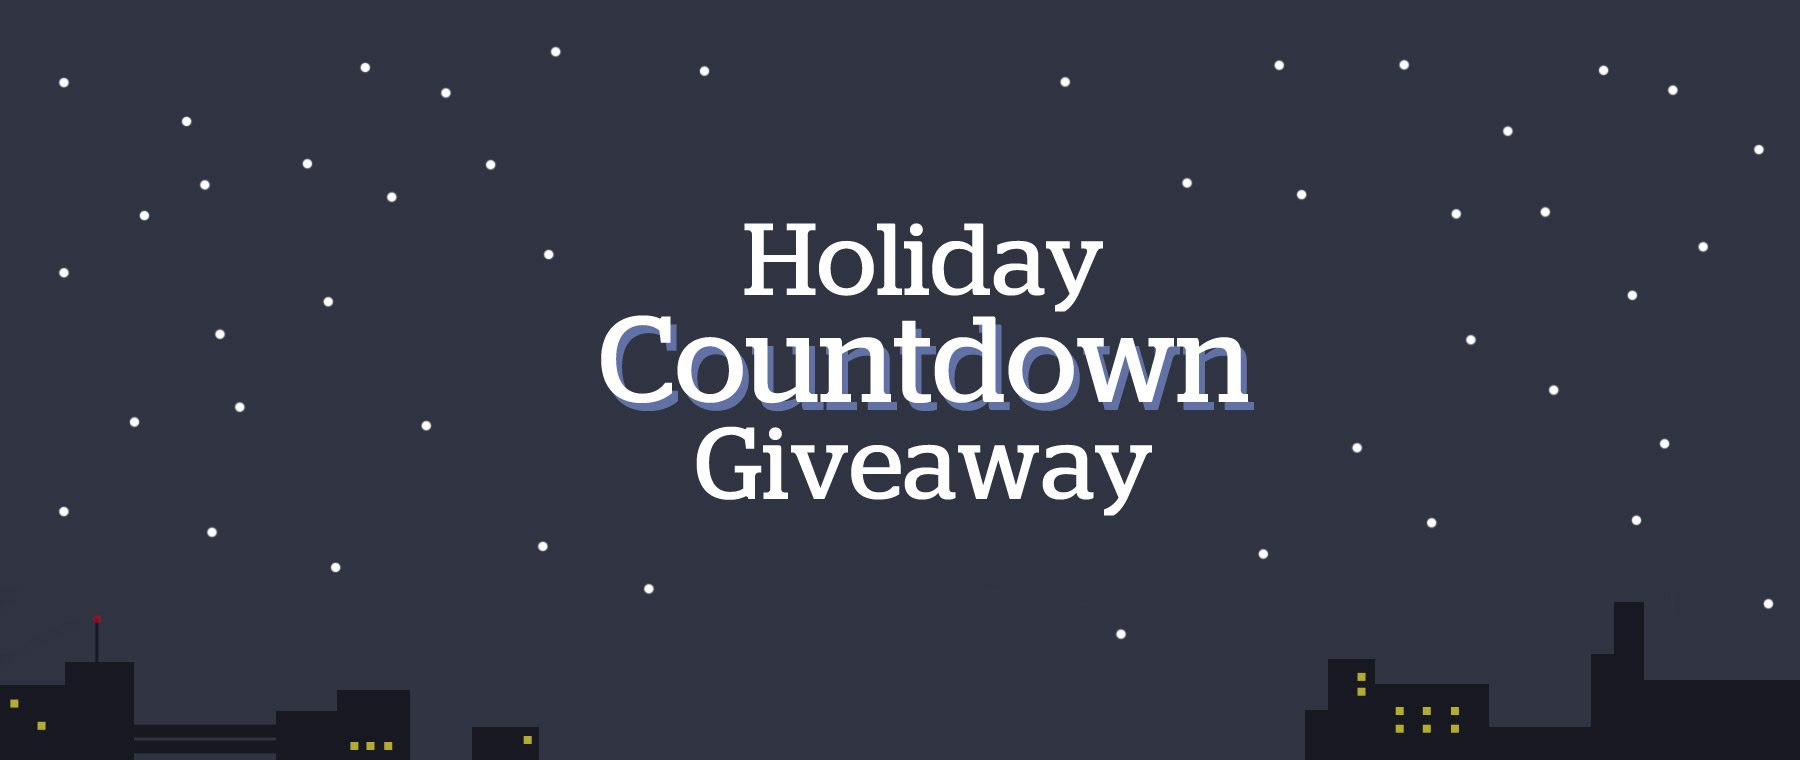 Enter to Win! Holiday Countdown Giveaway